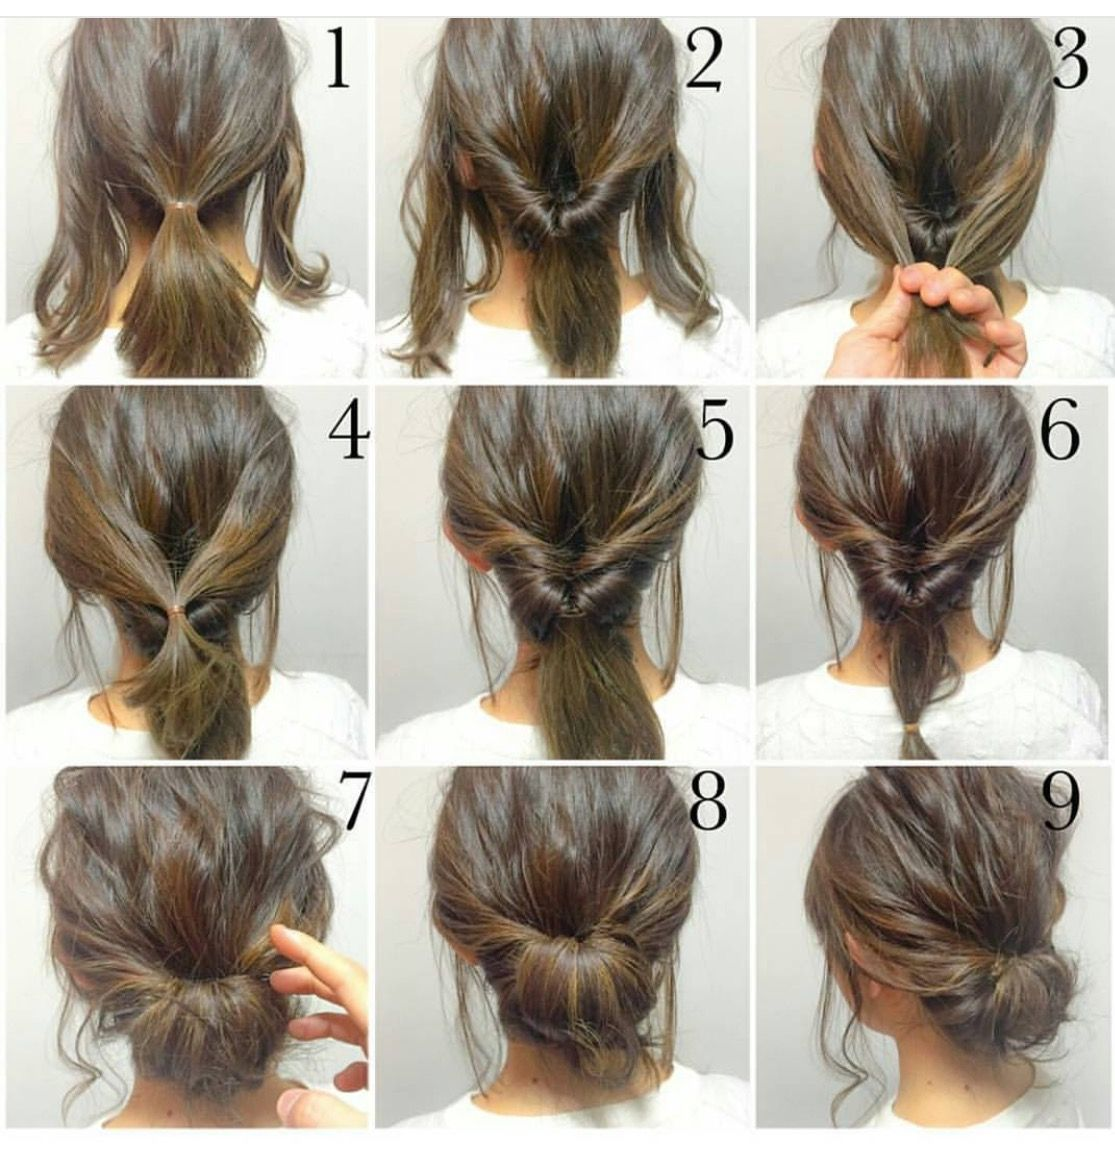 Easy Hairstyles For Long Hair Magnificent Easy Hope This Works Out Quick Morning Hair  Hairstyles